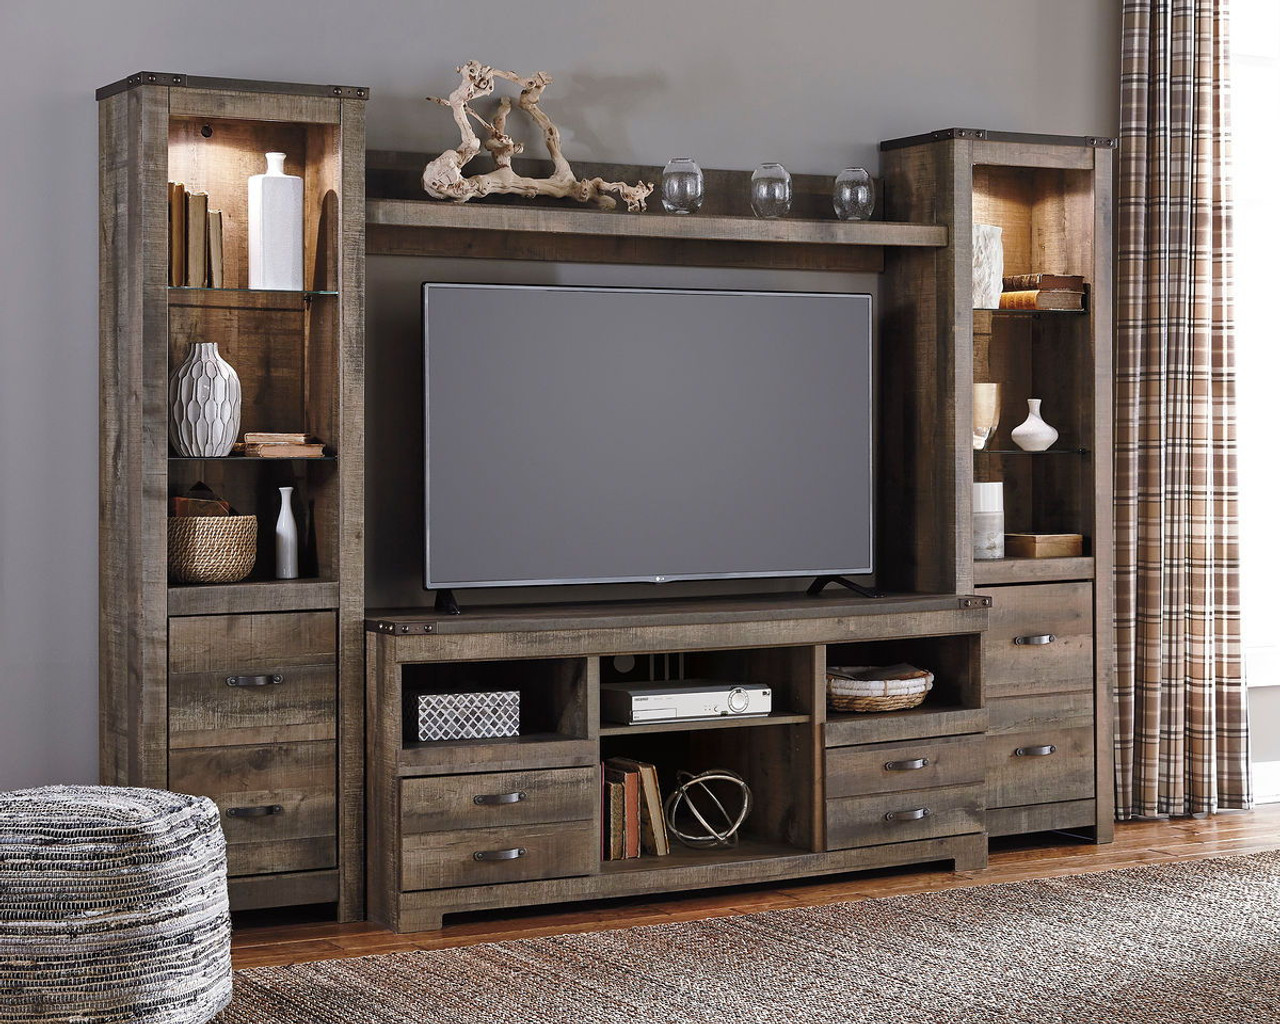 Trinell Entertainment Center Large Tv Stand 2 Tall Piers Bridge On Sale At Stringer Furniture Serving Jackson Ms